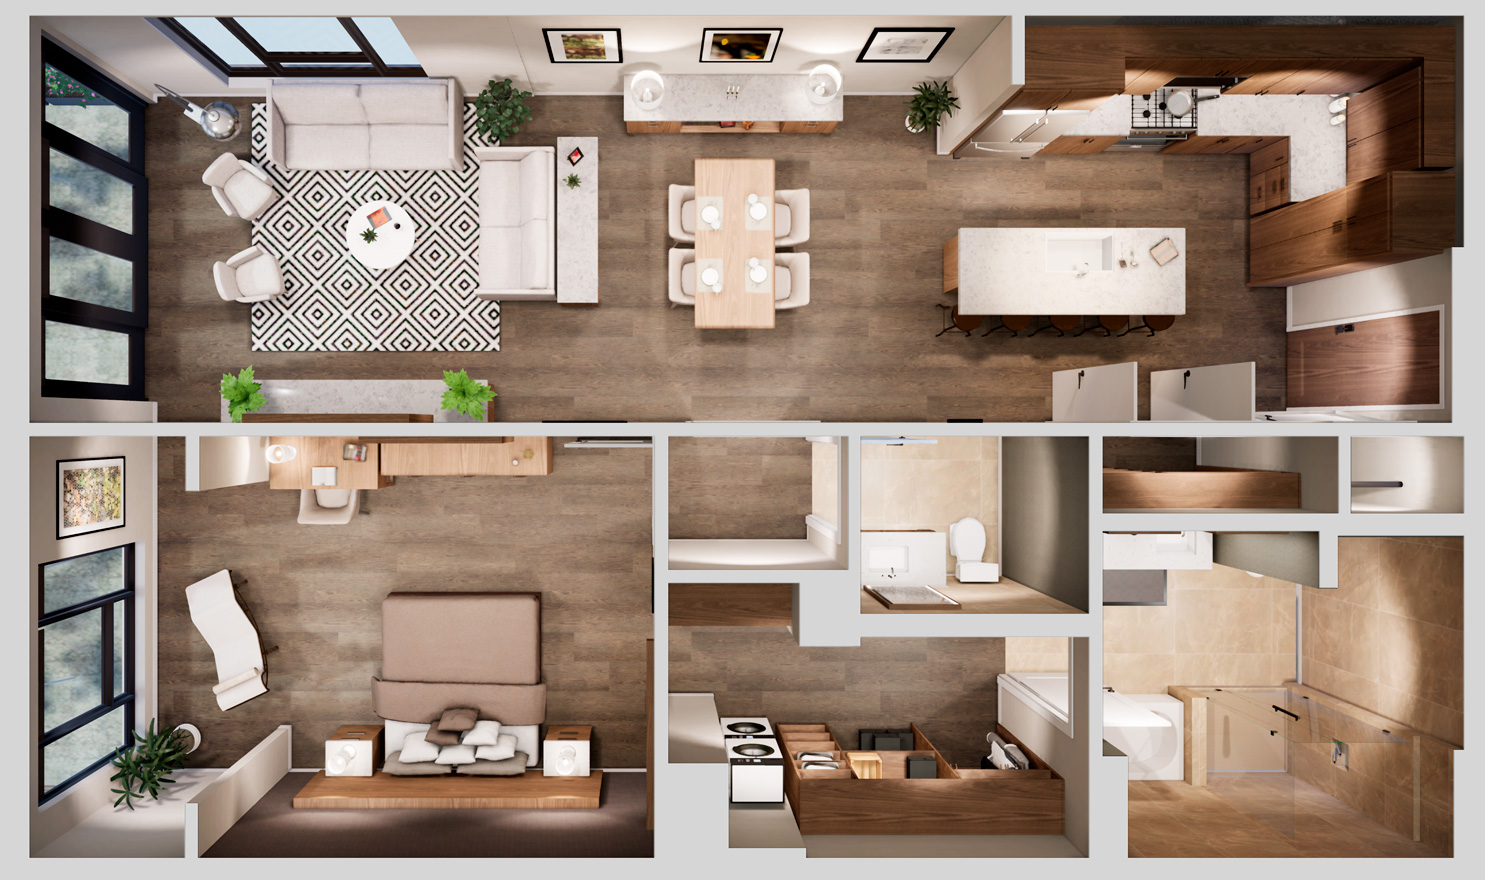 Aerial view of a one-bedroom floorplan with a balcony at Life Time Living